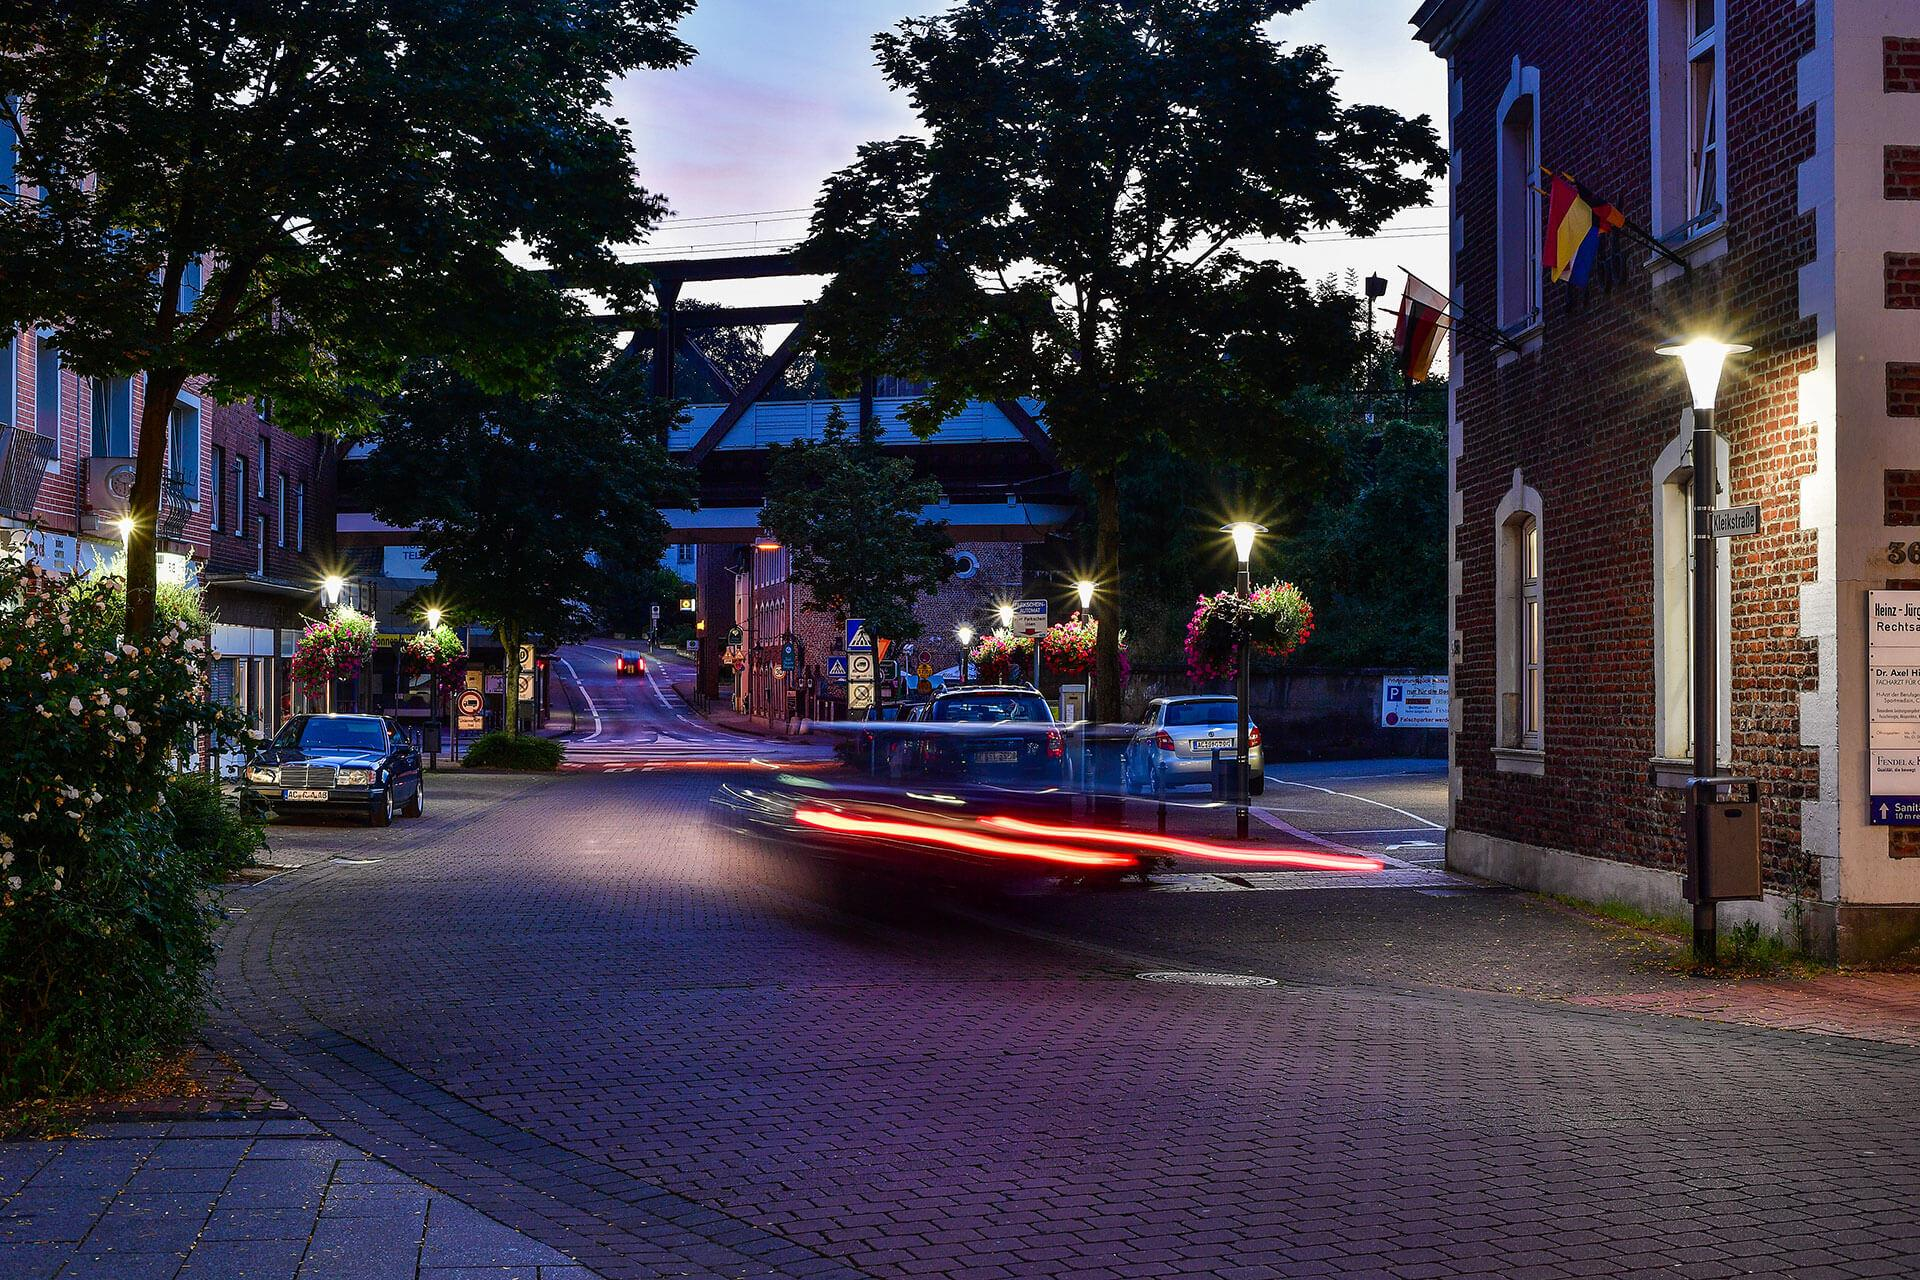 Pilzeo lights the streets of Herzogenrath and Würselen, improving safety while cutting energy consumption